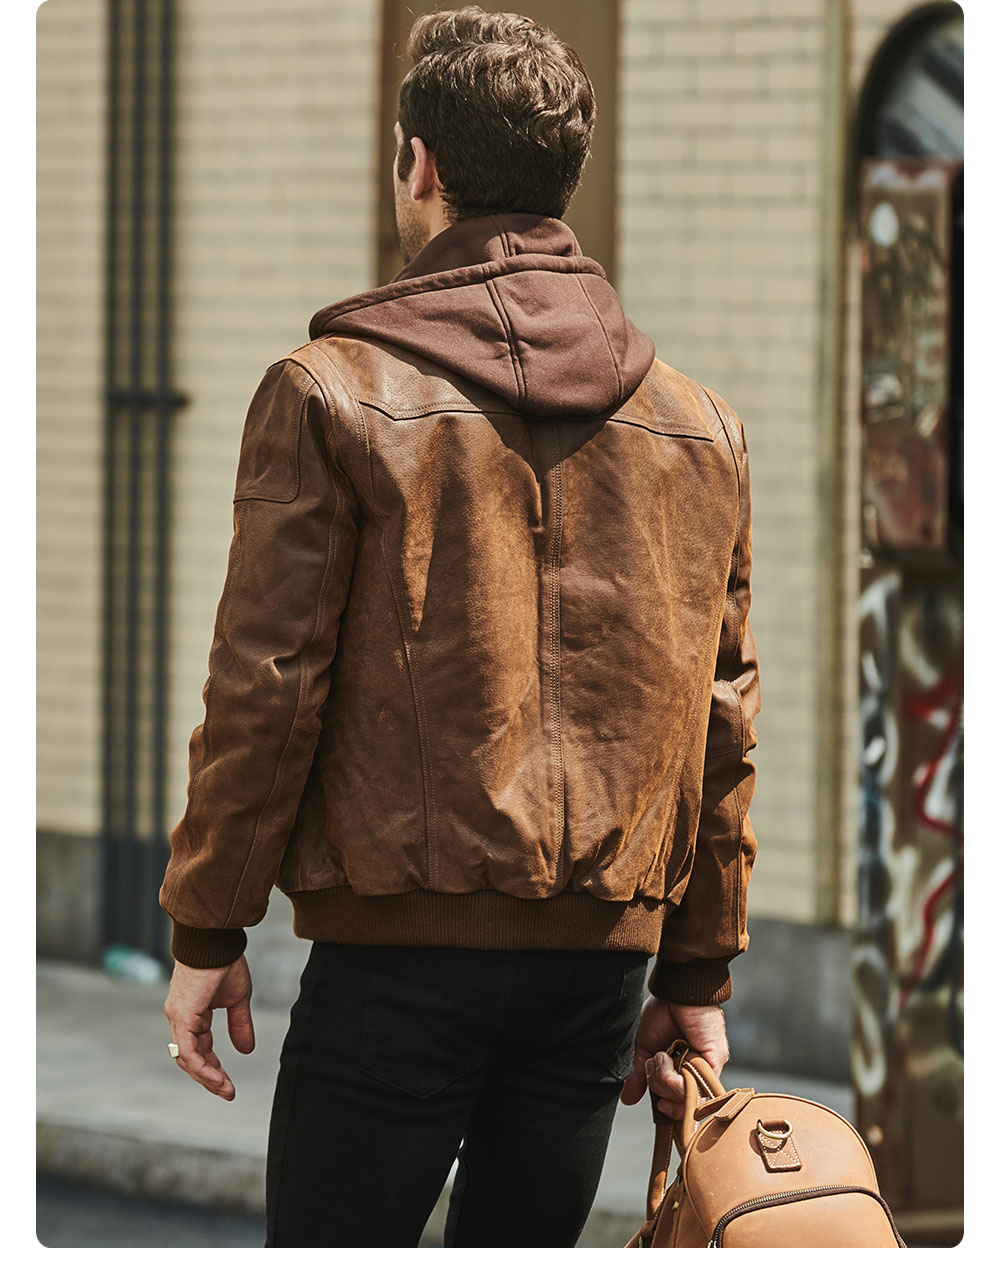 H29af52e63f5a434782ce1f7af35a3510l FLAVOR New Men's Real Leather Jacket with Removable Hood Brown Jacket Genuine Leather Warm Coat For Men